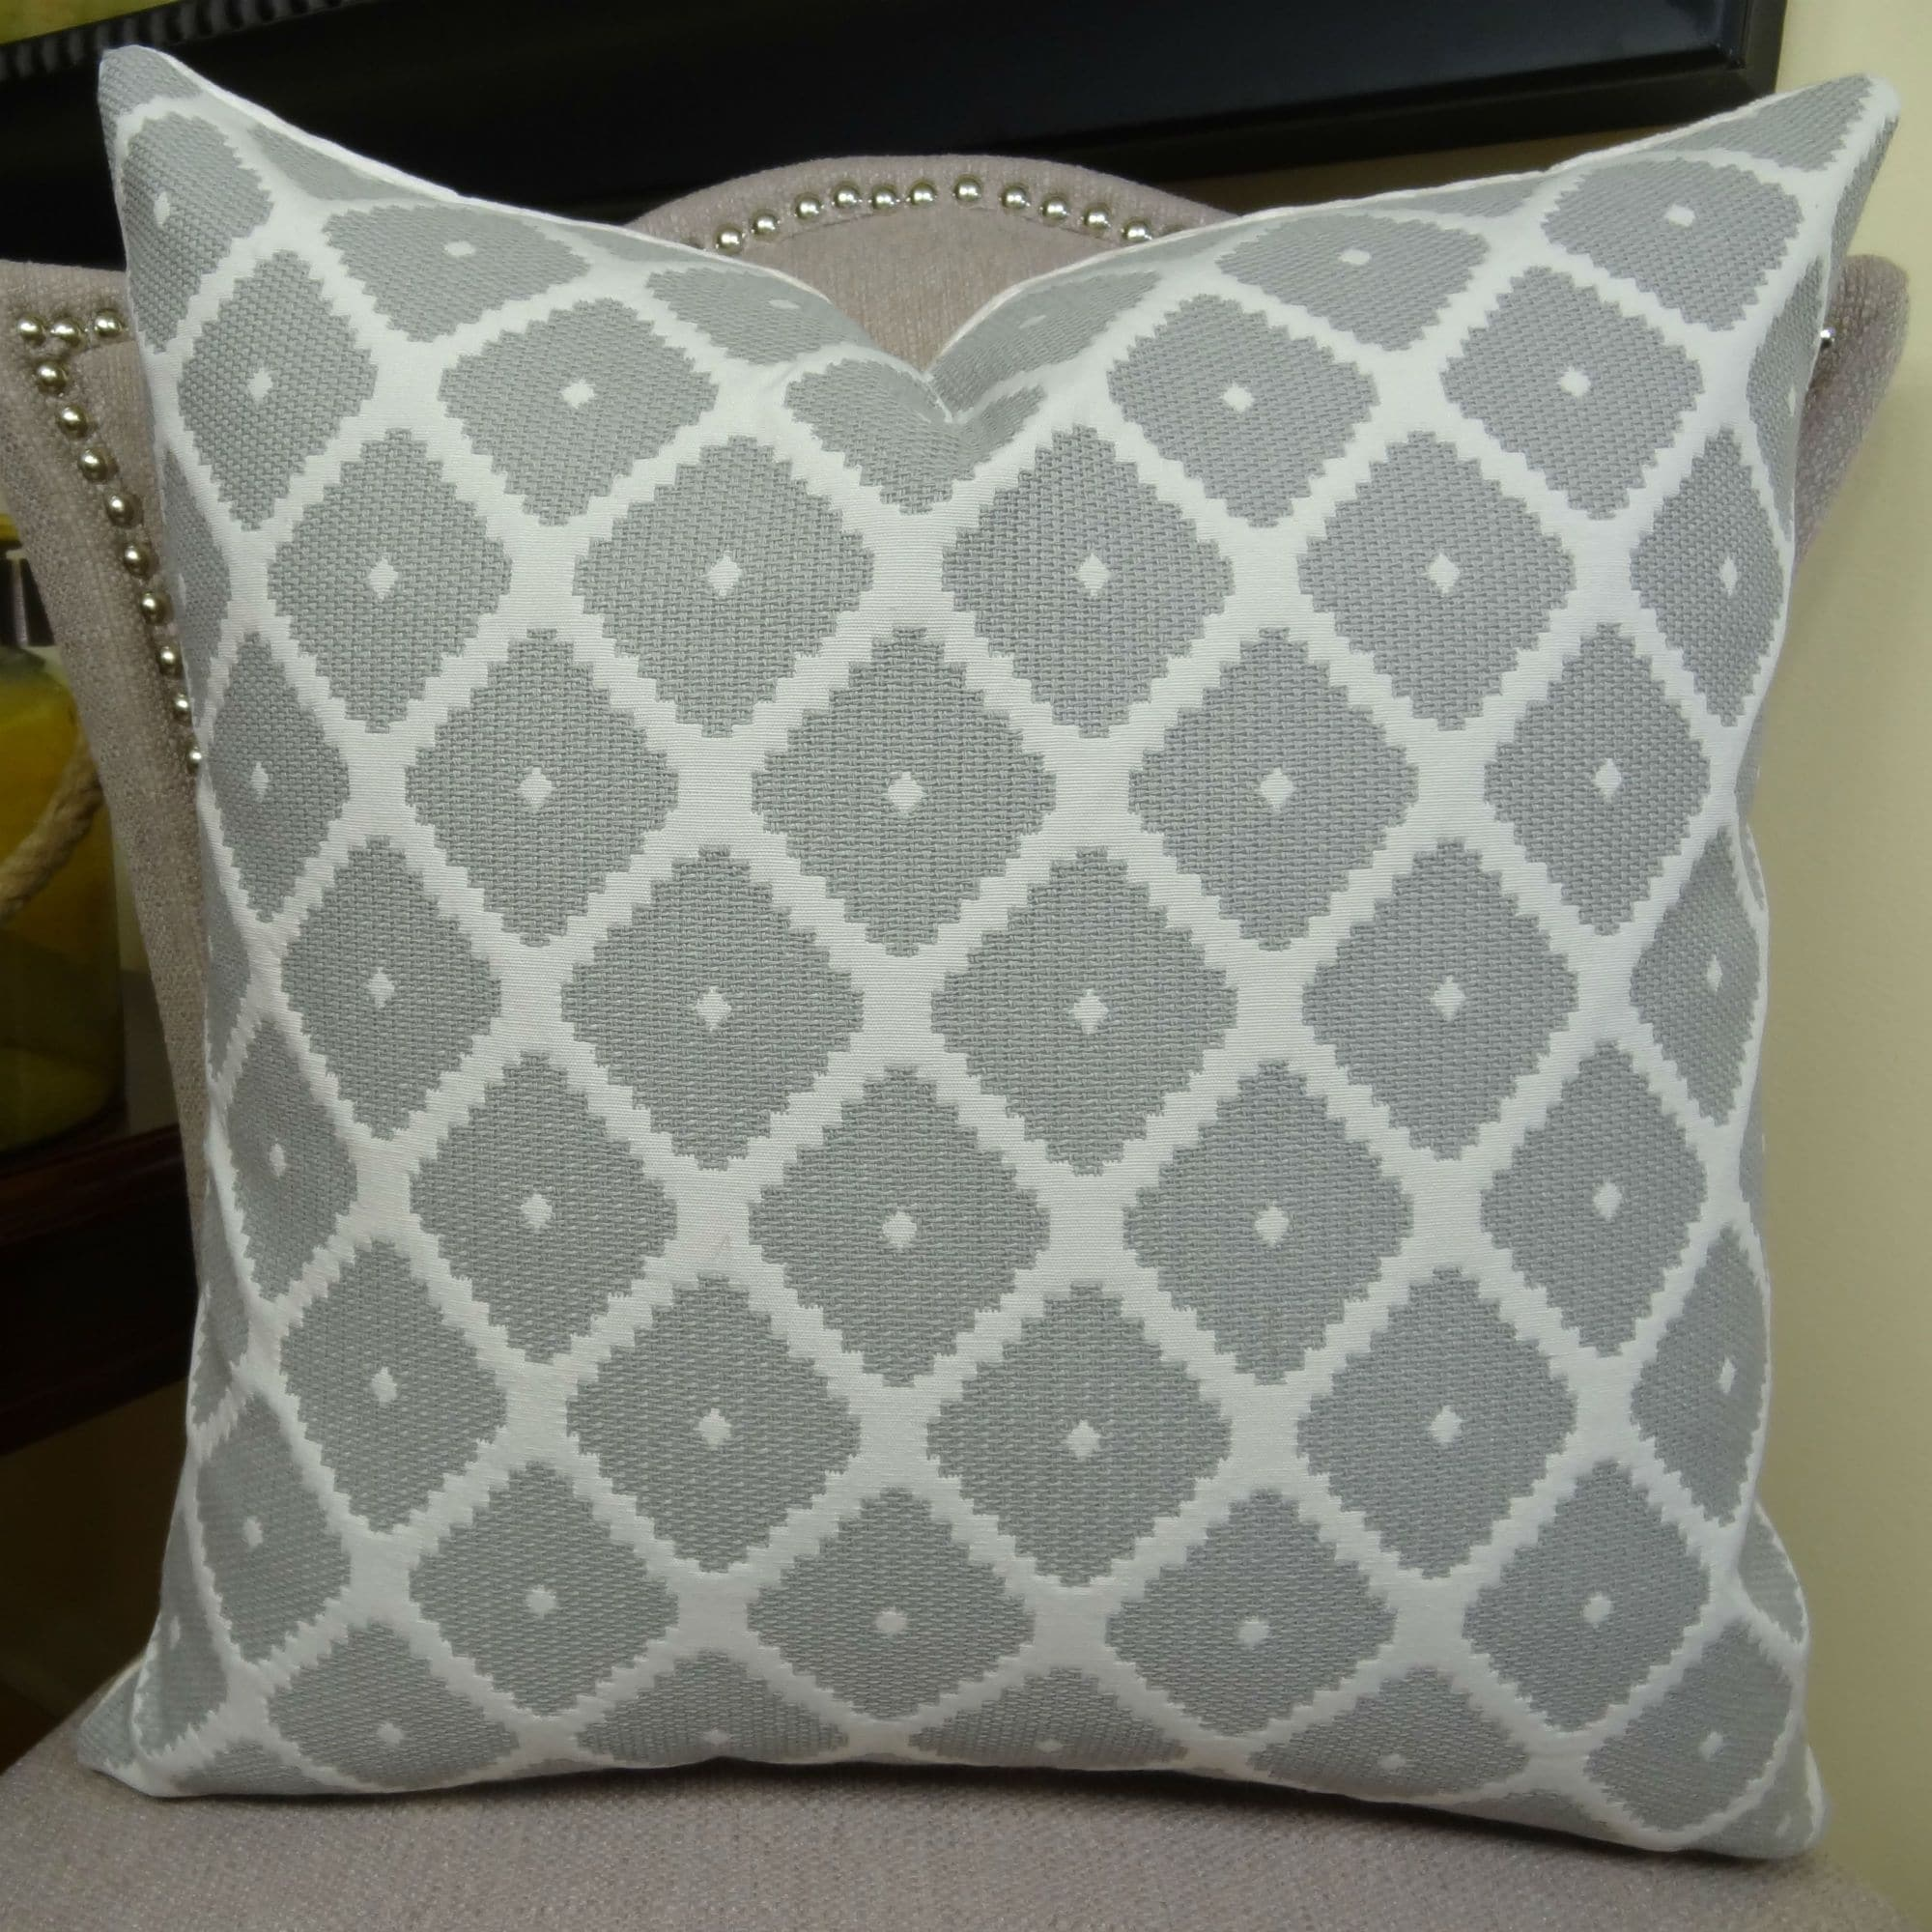 Thomas Collection Gray White Geometric Designer Throw Pillow, Handmade in USA, 11196D (Large - Square - double sided 22 x 22)